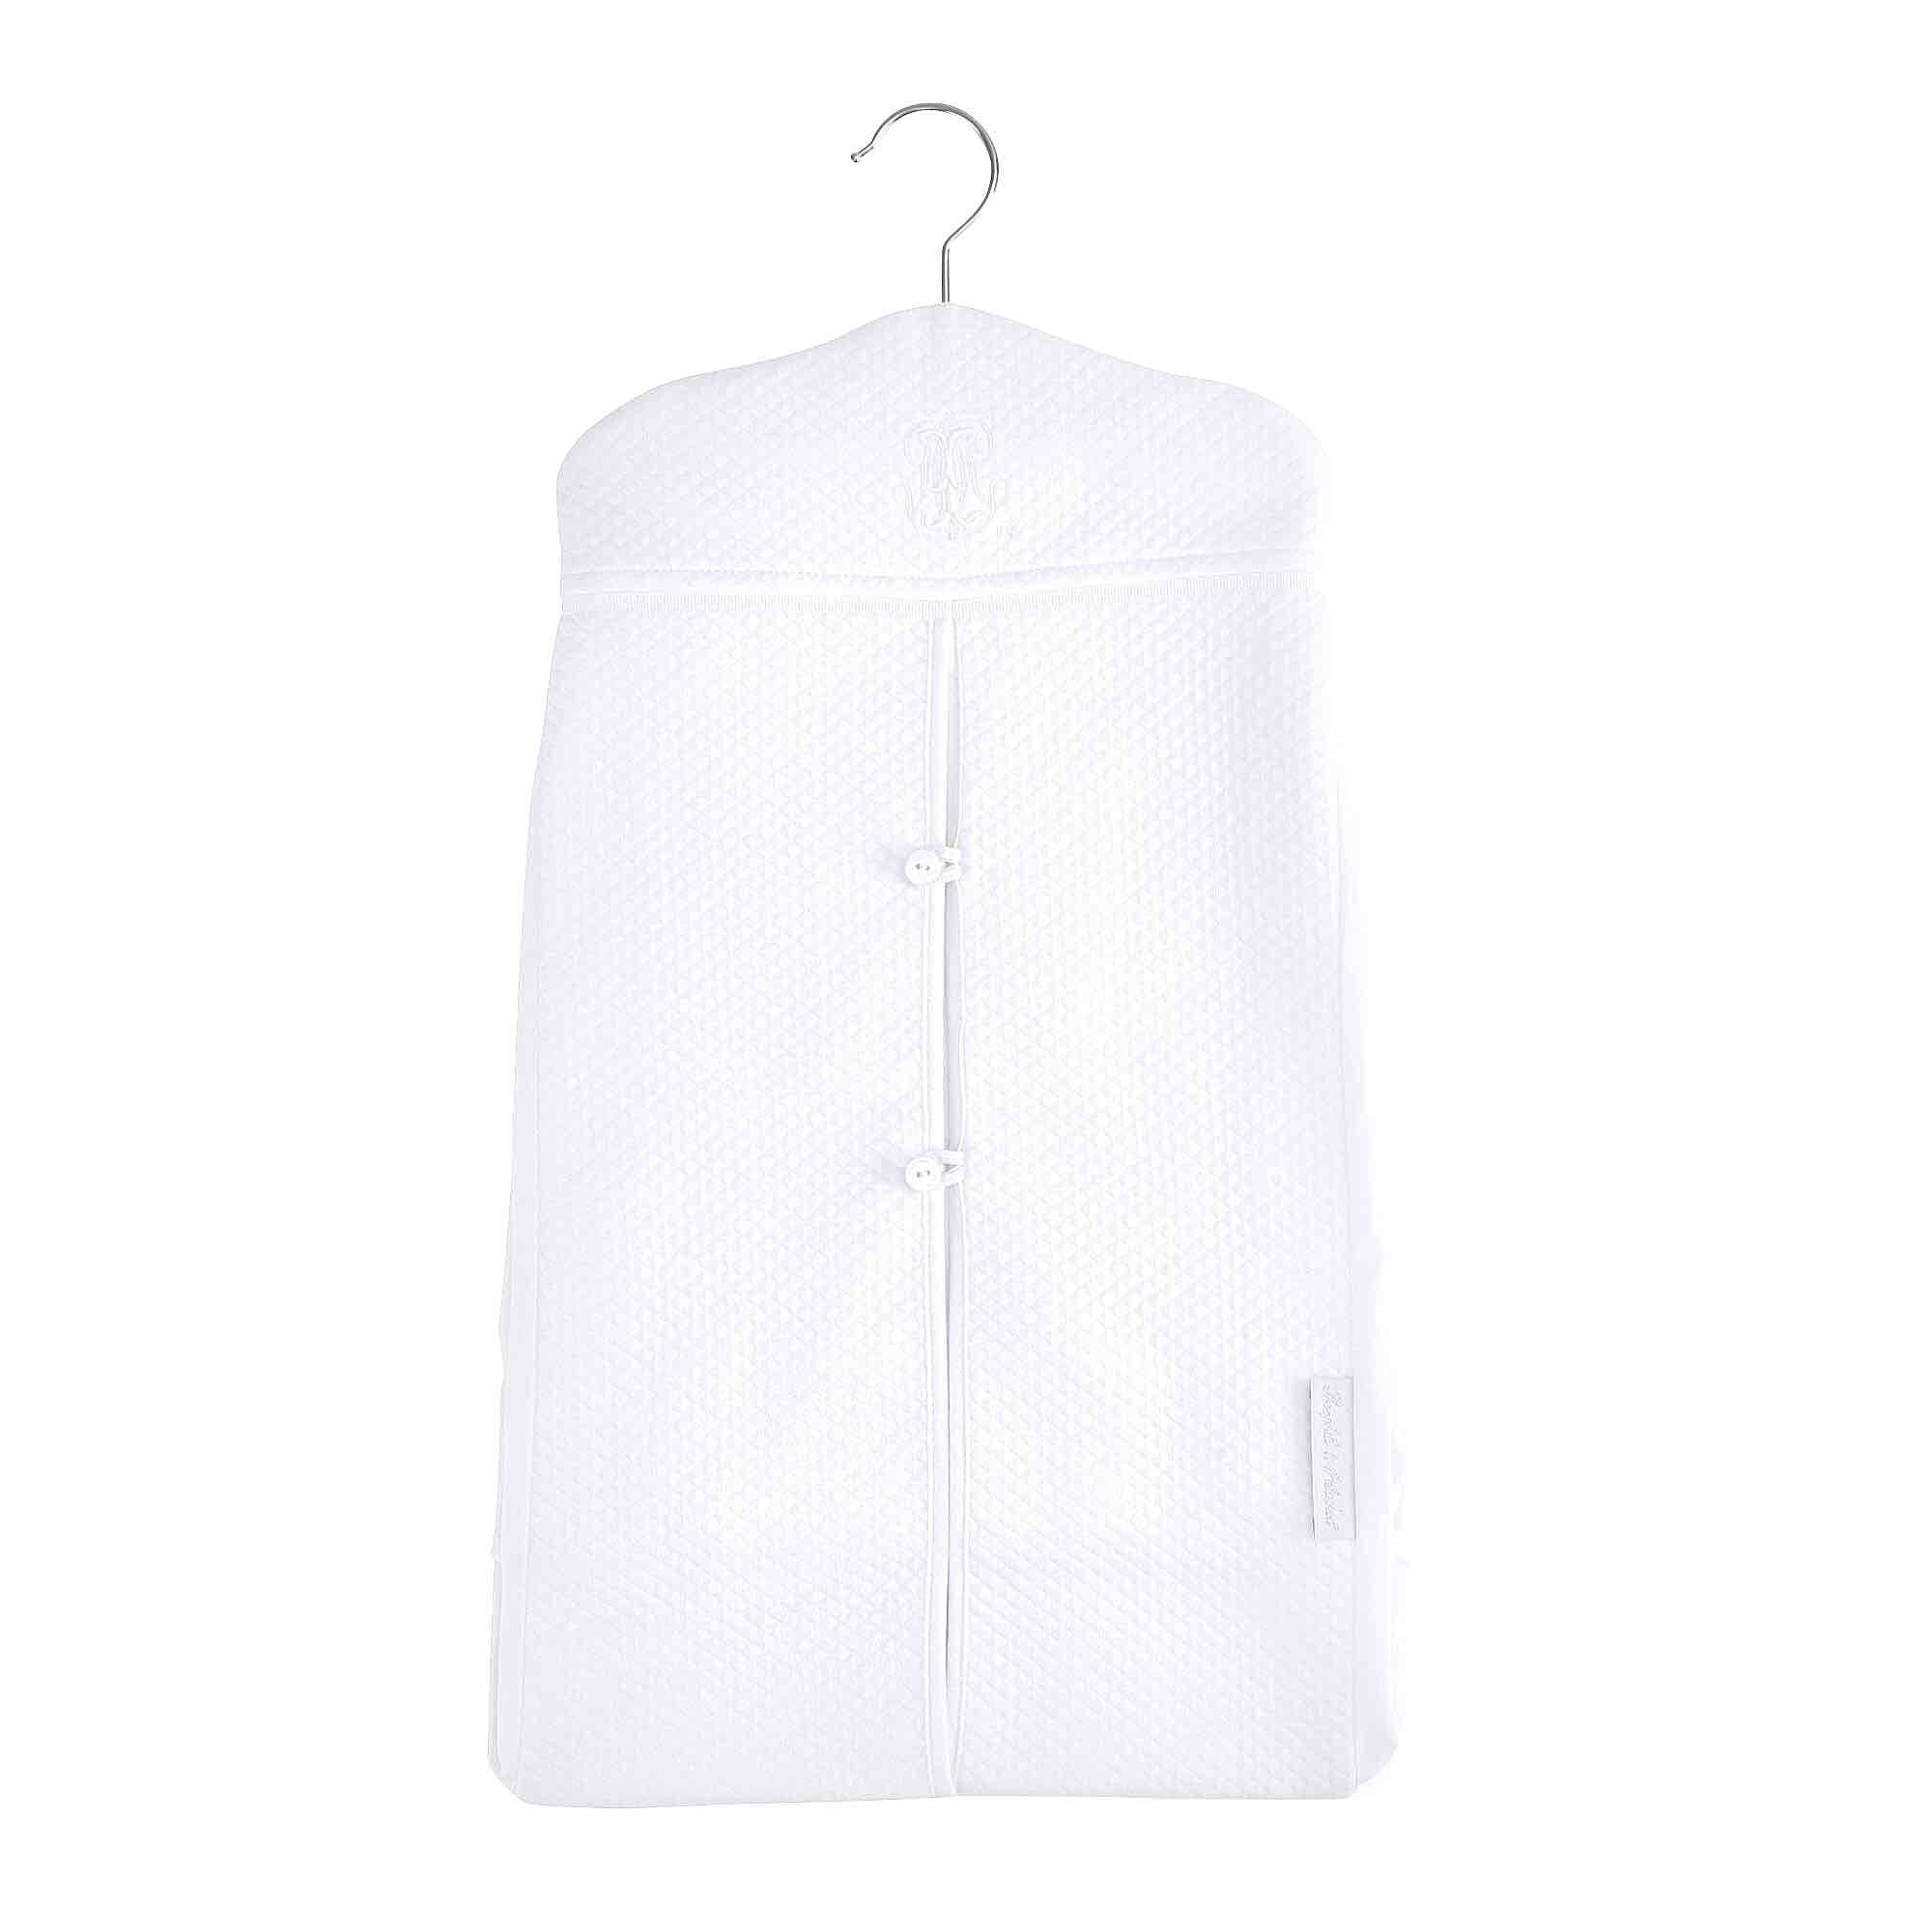 Theophile & Patachou Nappy Stacker - Royal White